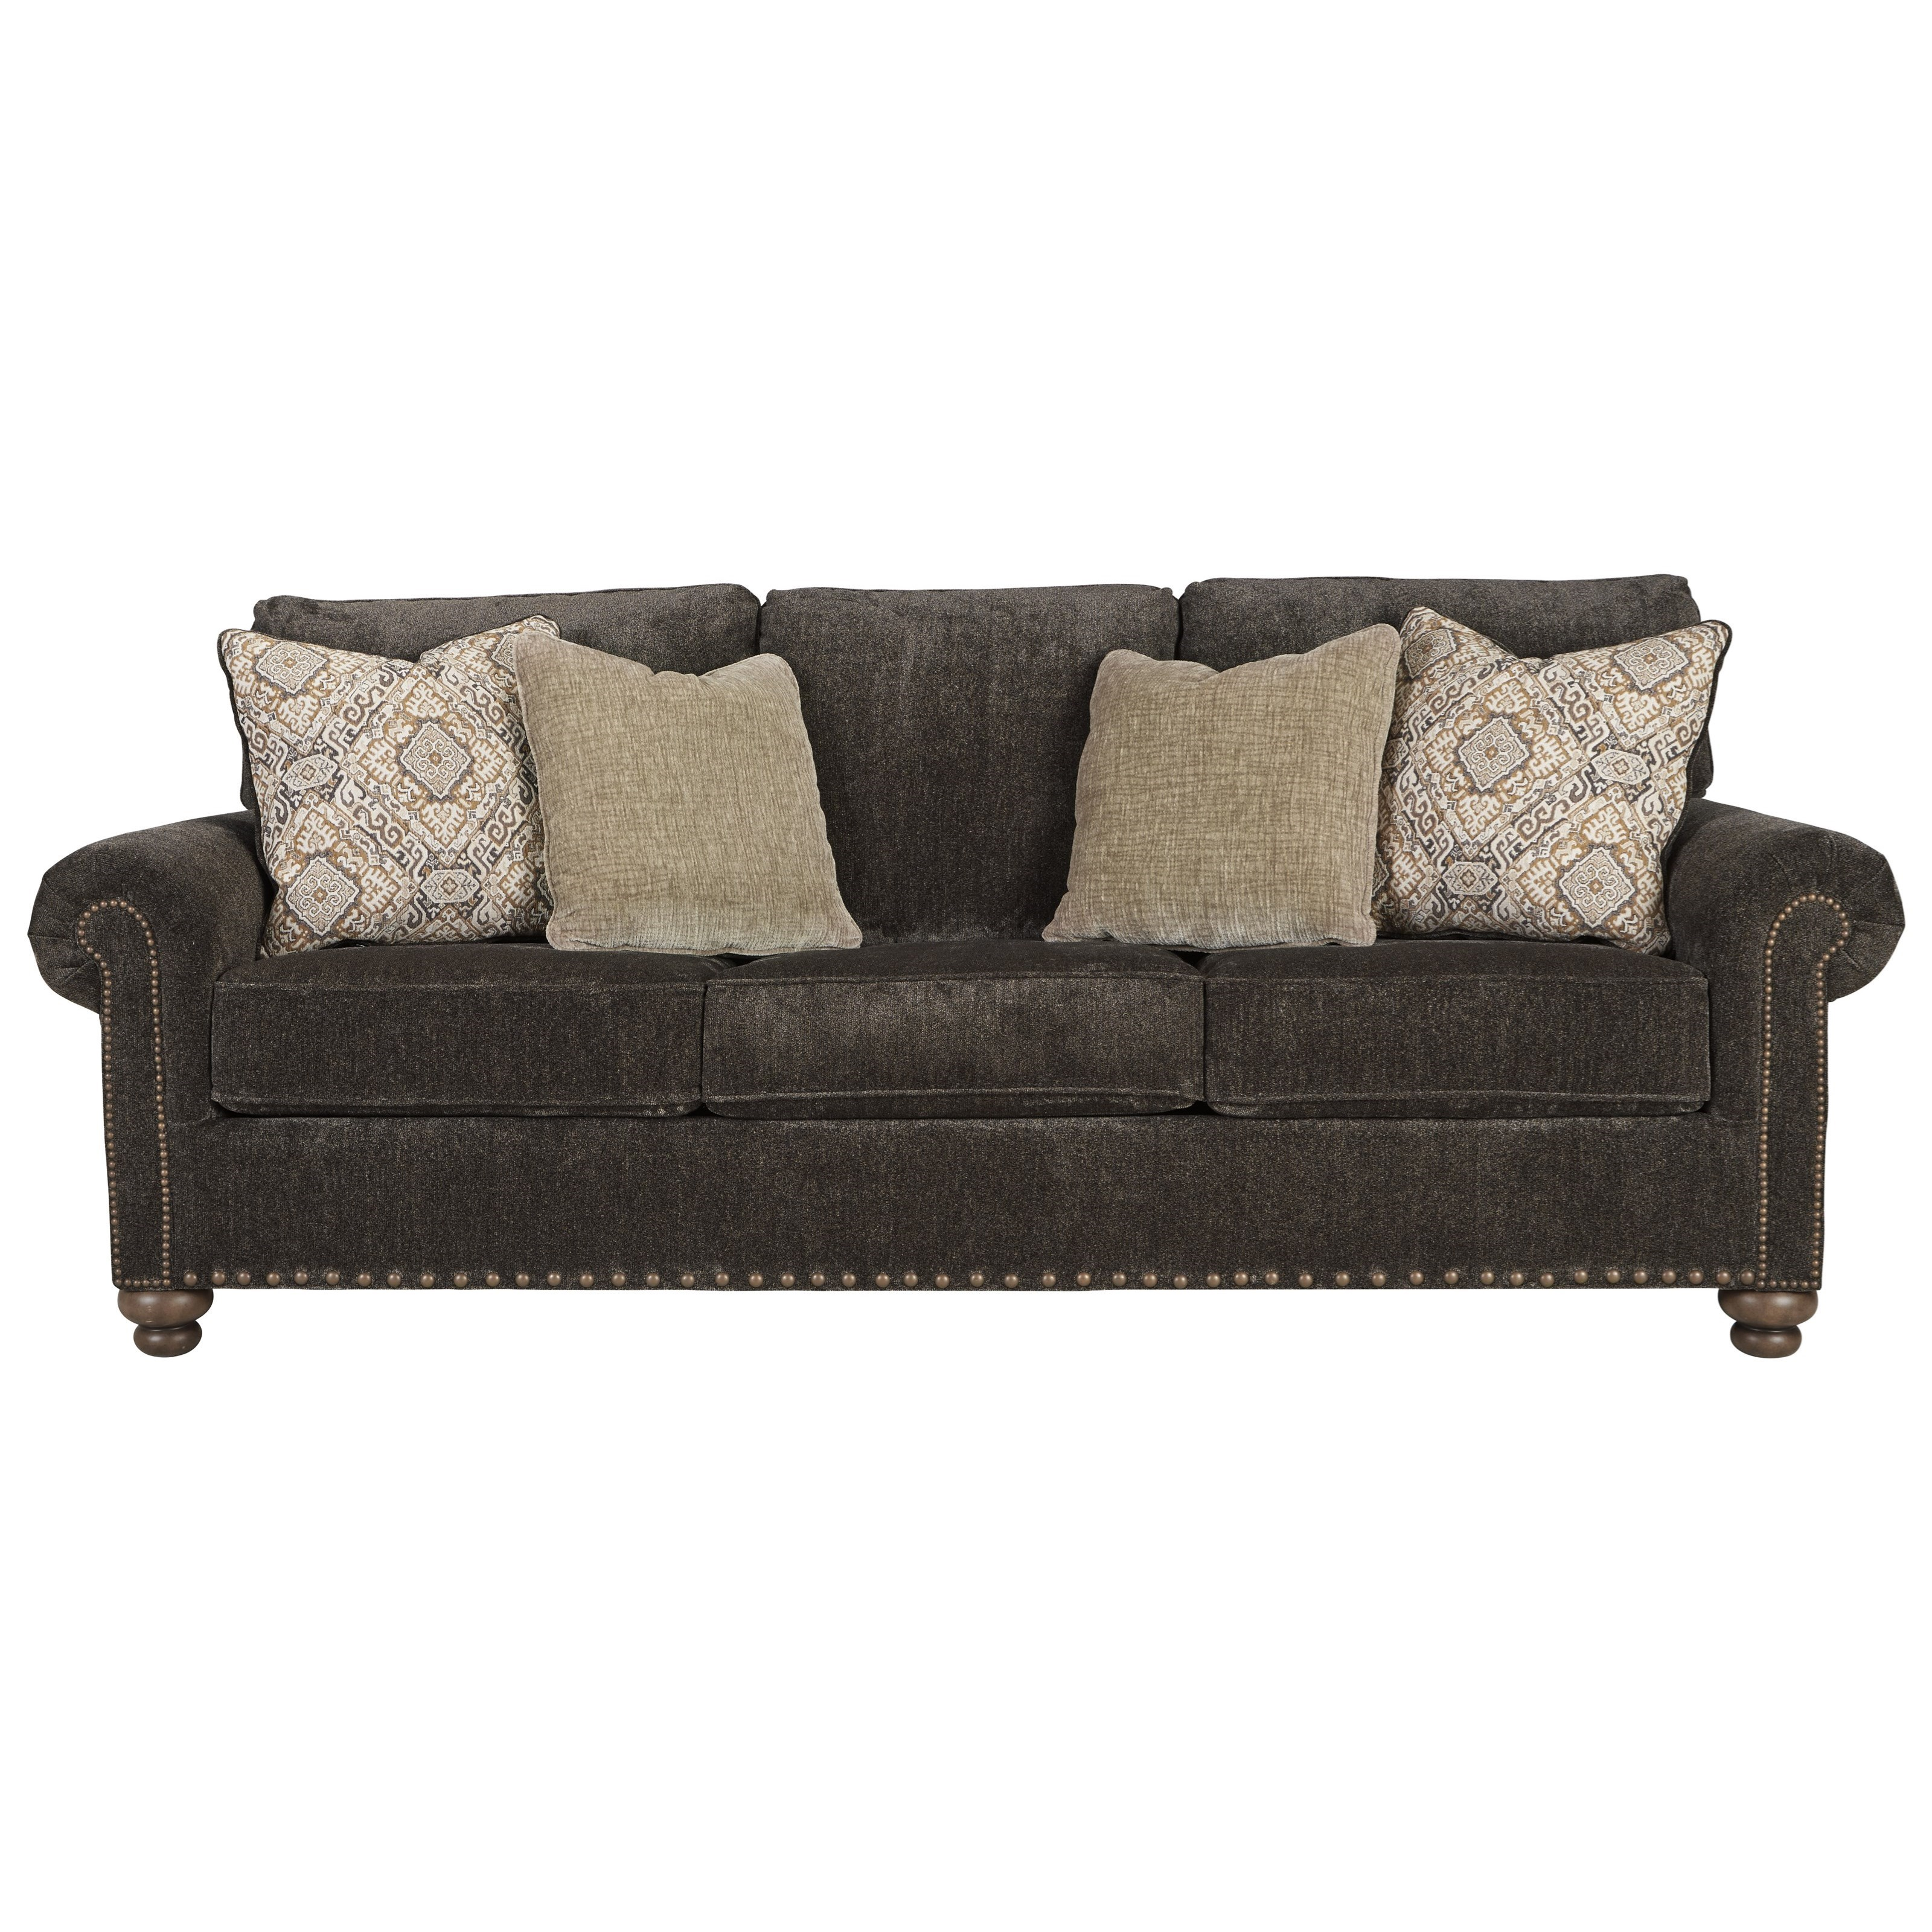 Signature Design By Ashley Stracelen Transitional Sofa